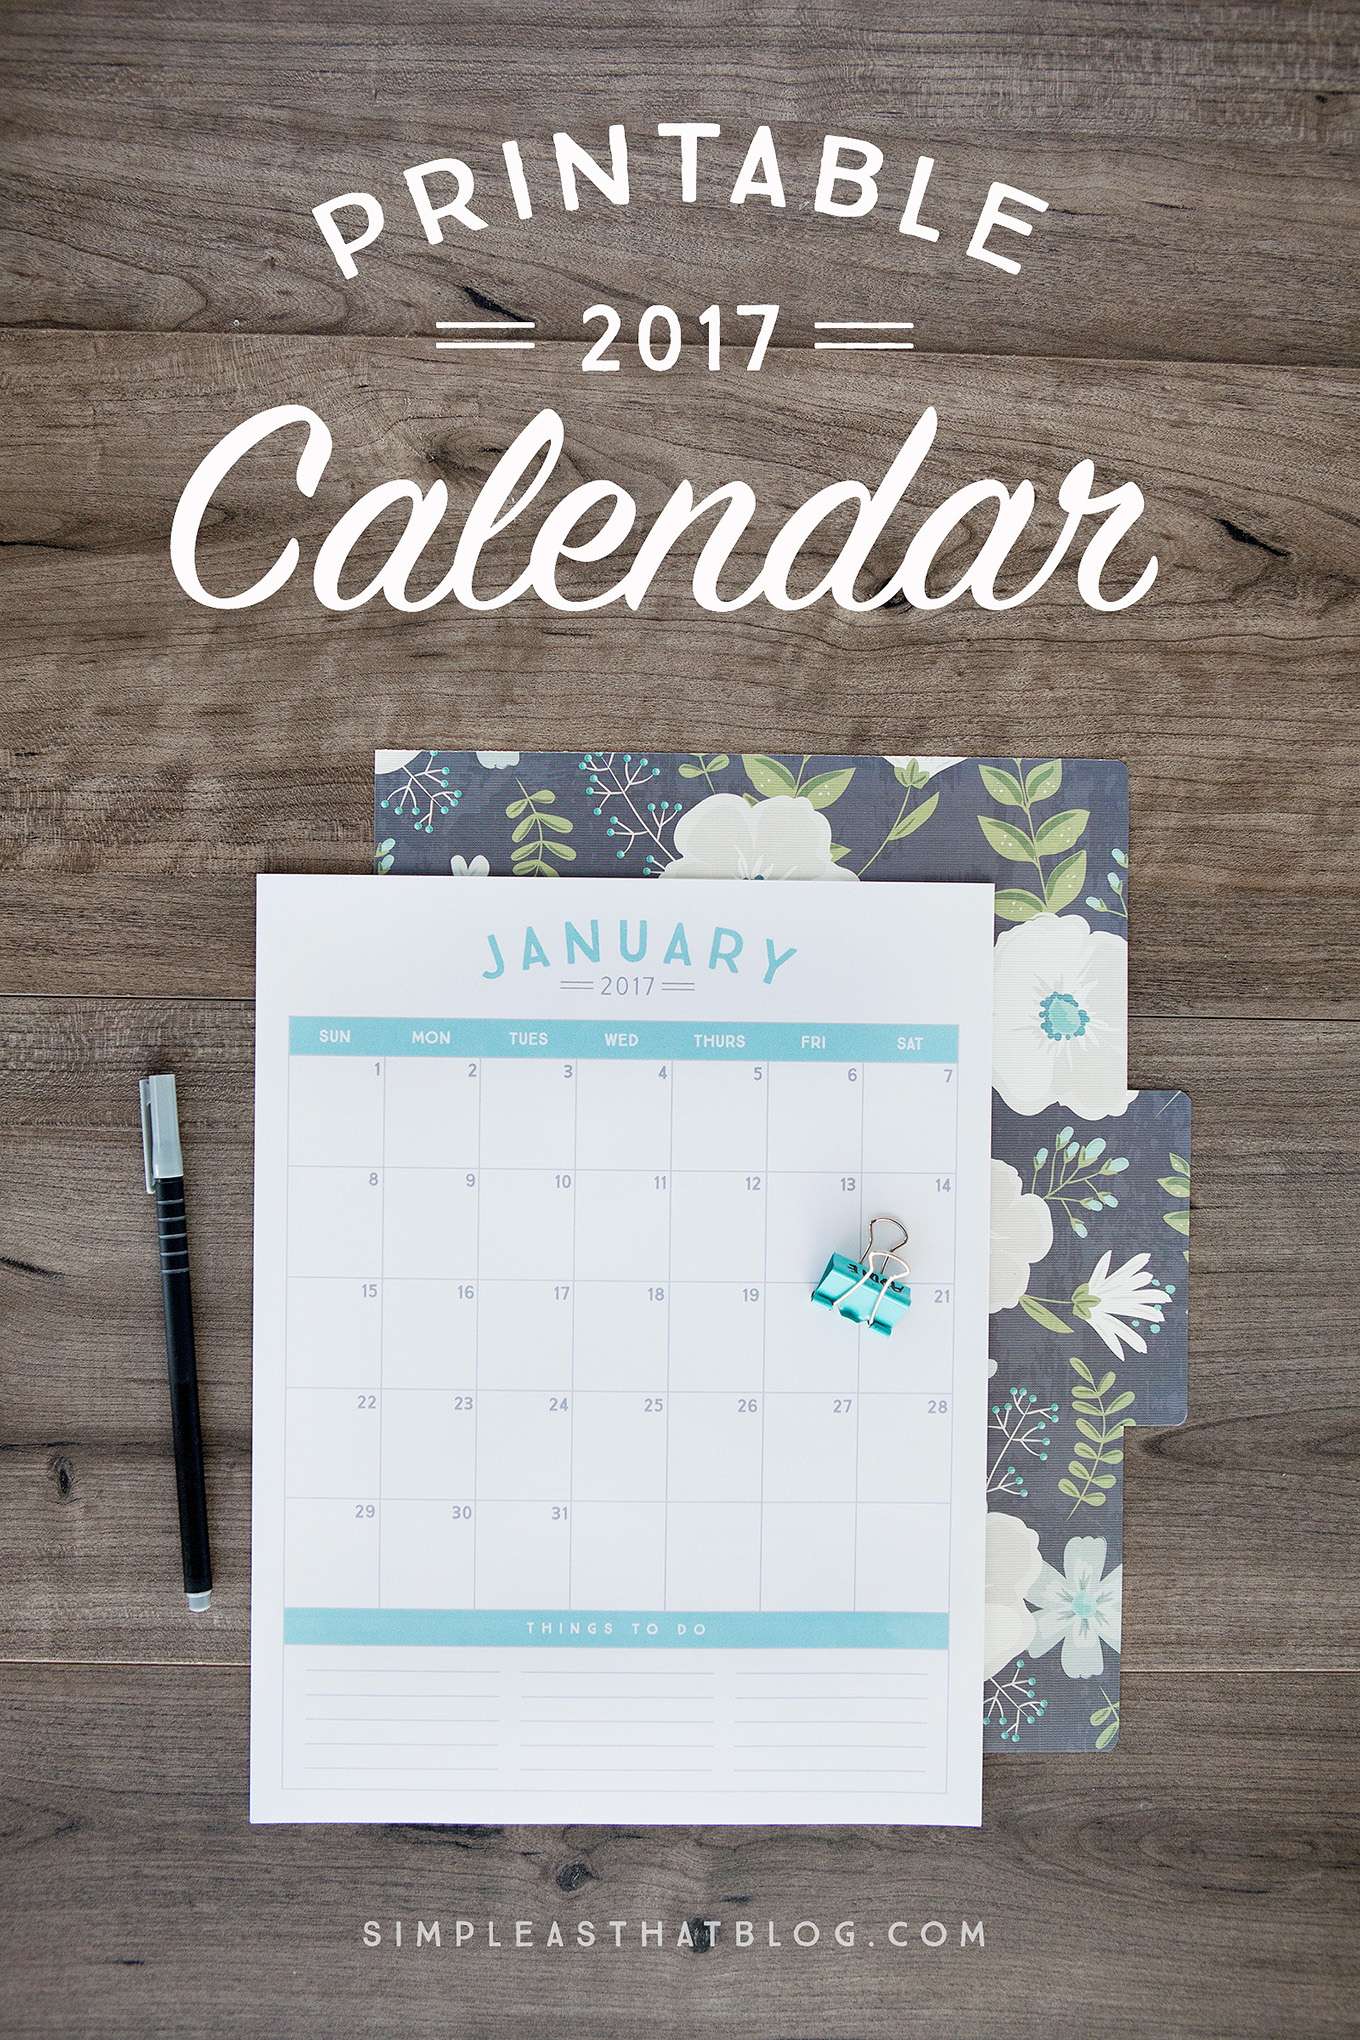 get organized in the new year with these 2017 printable calendars available in 6 gorgeous